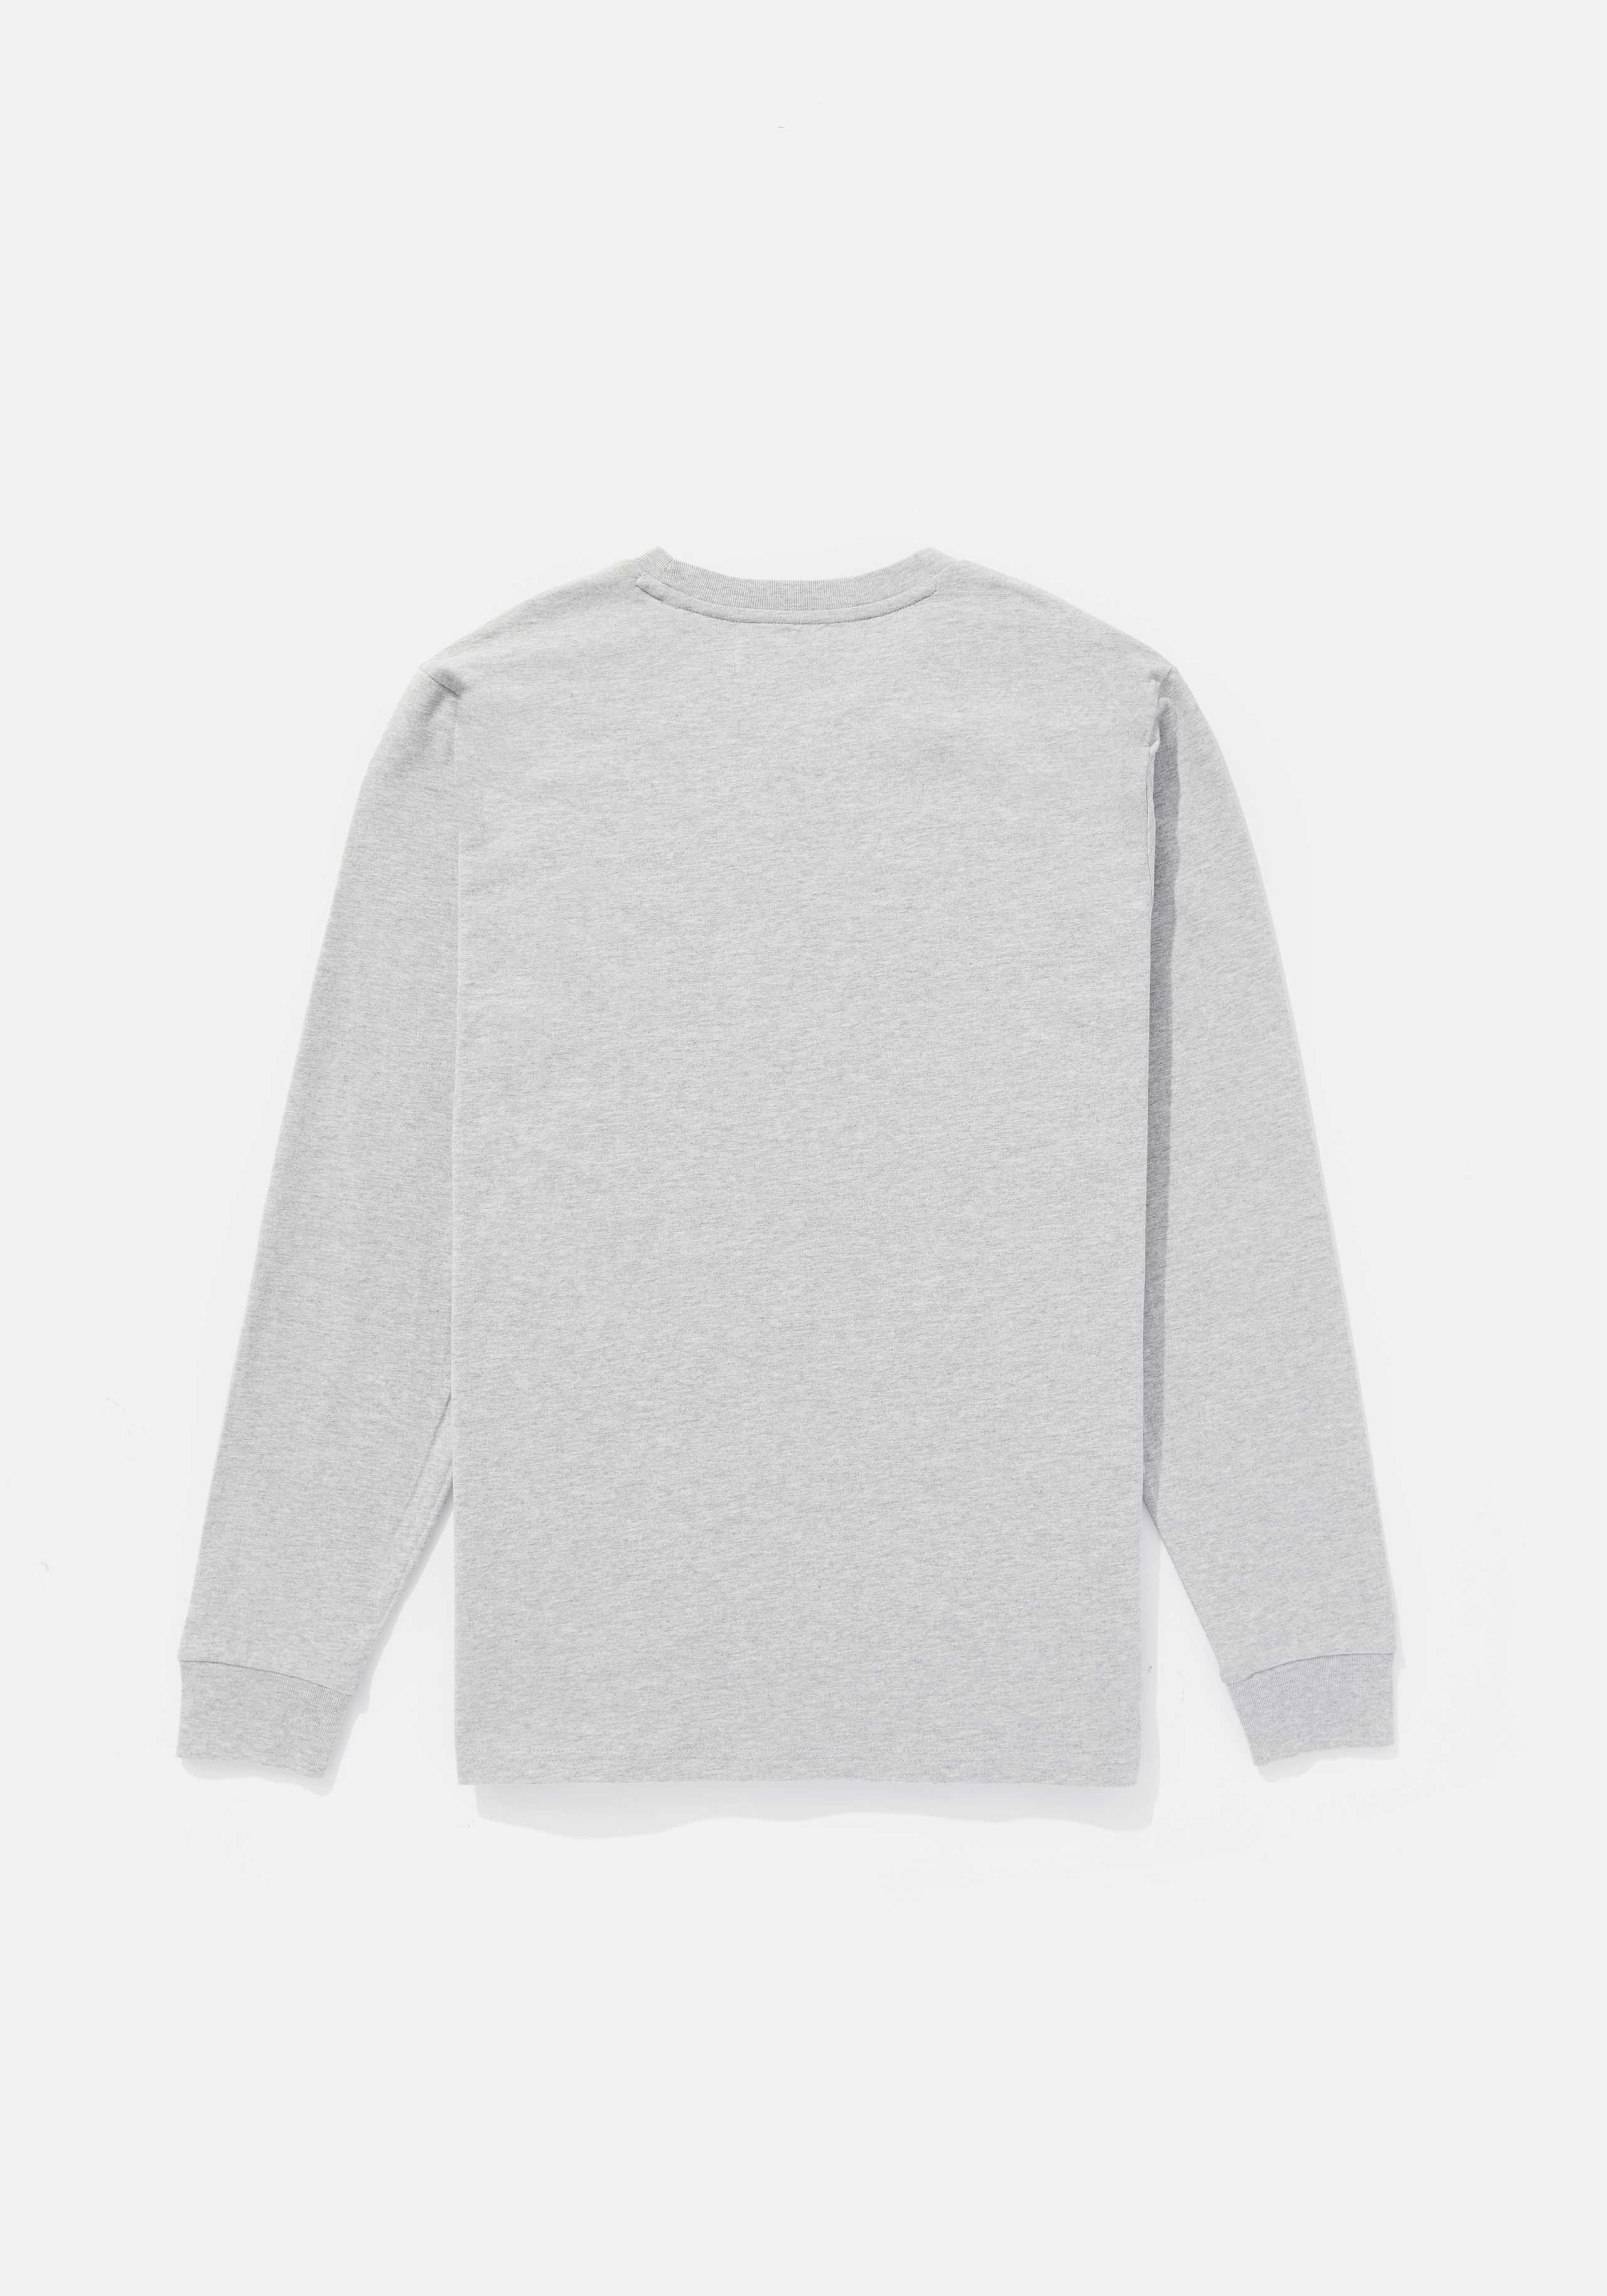 mki relaxed basic long sleeve 2